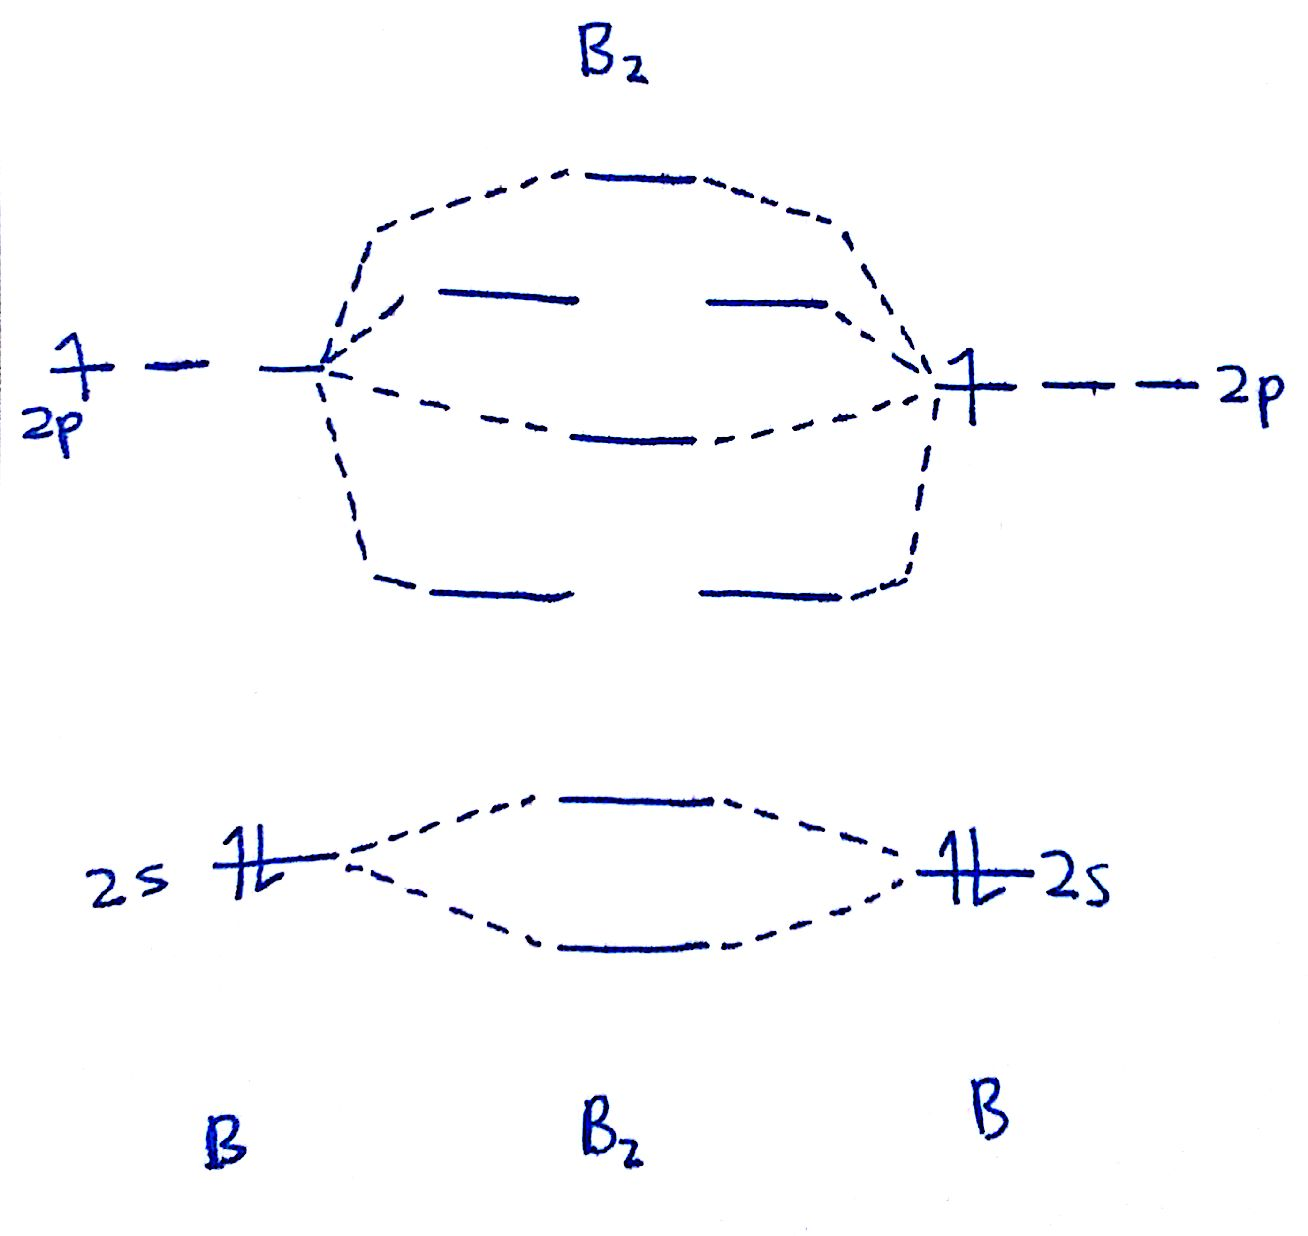 draw out the mo diagram and label in the valence electrons  boron has 2  electrons in the 2s 2 s orbitals and 1 electron in the 2p 2 p orbital